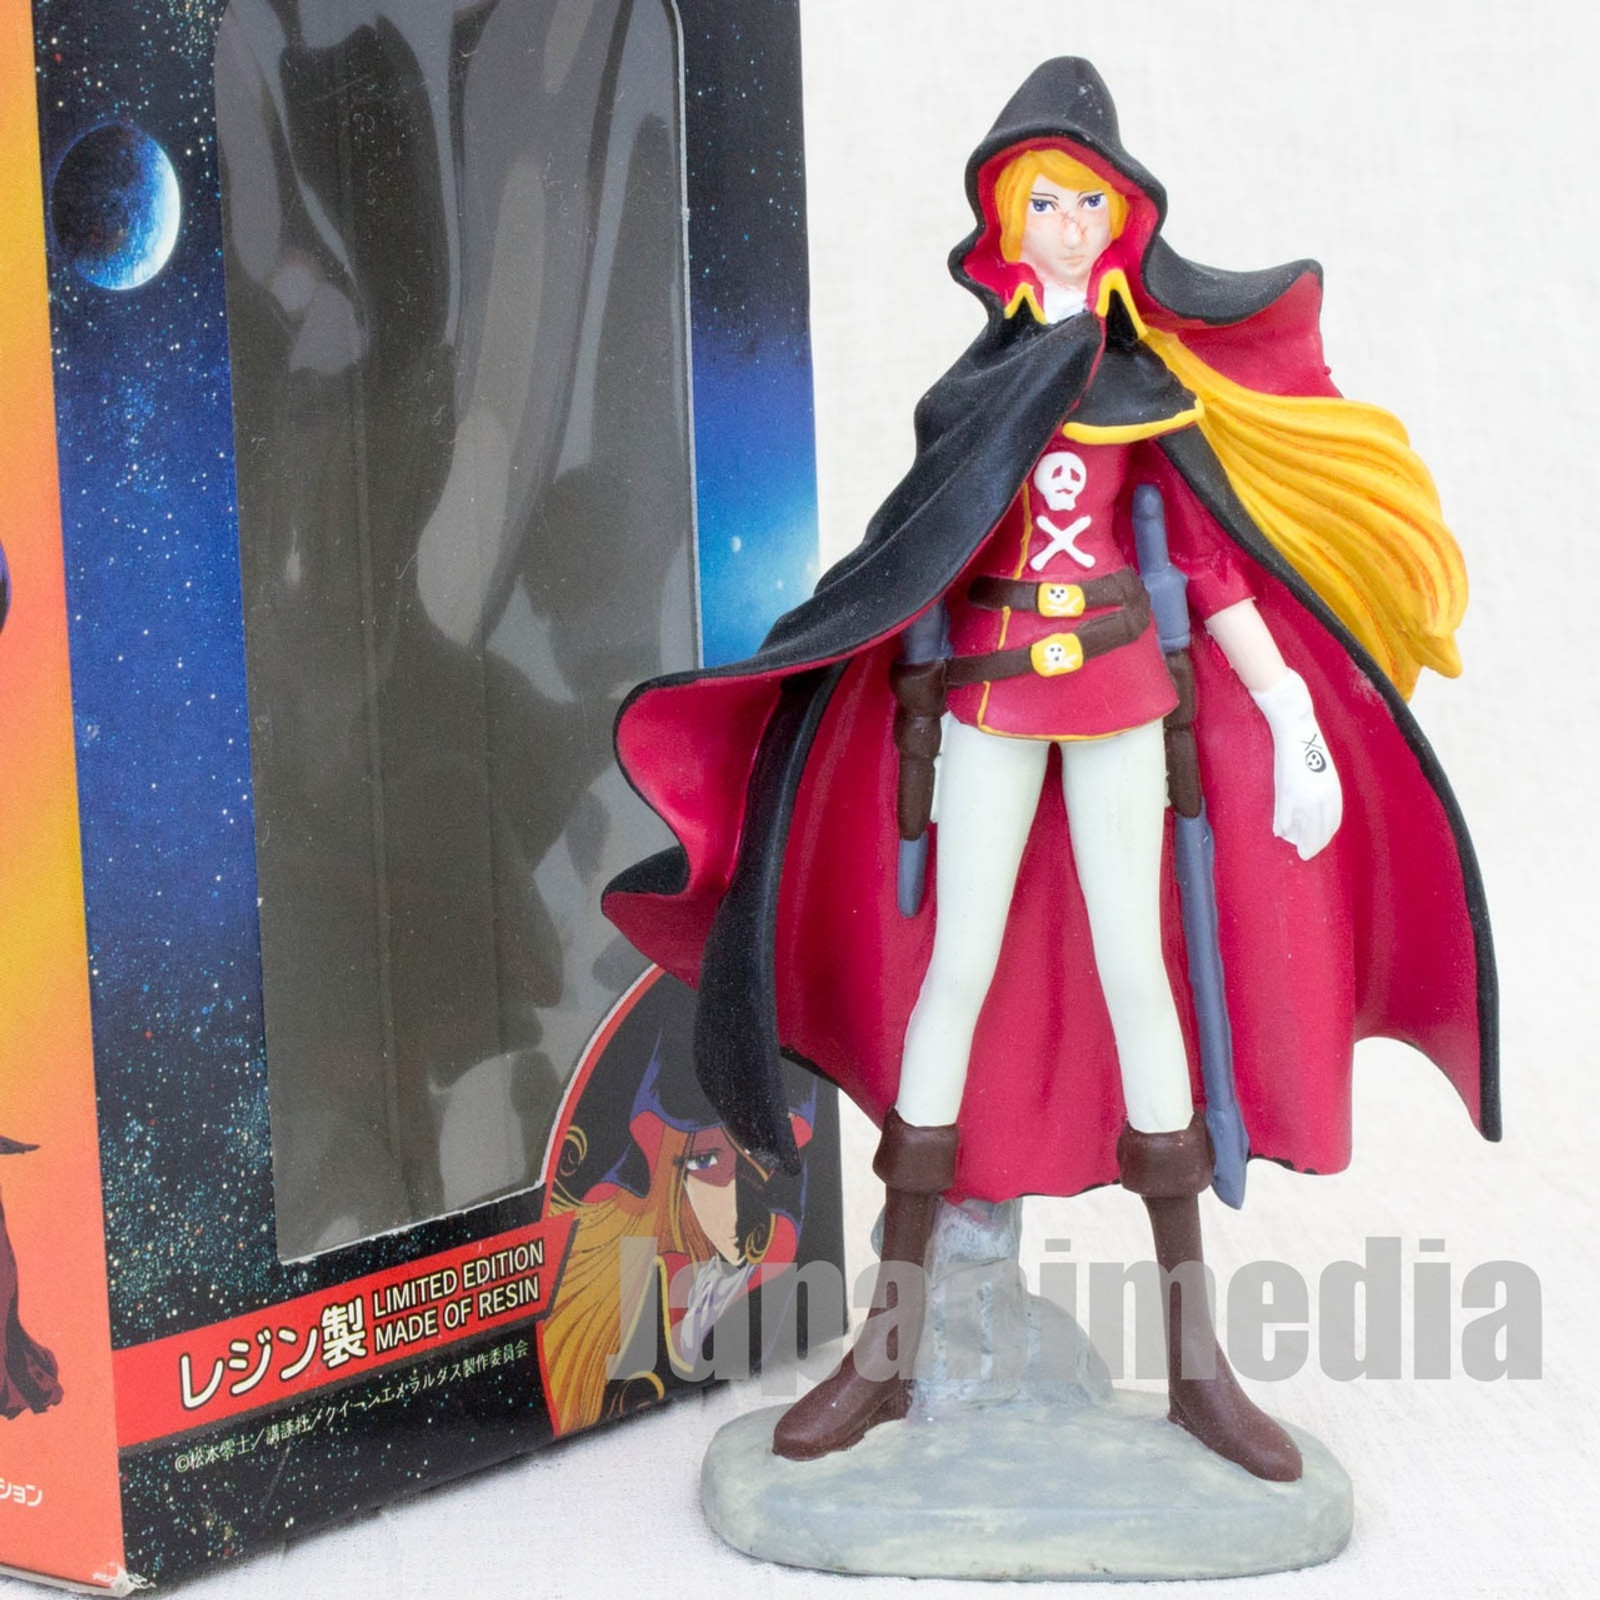 Queen Emeraldas EMERALDAS Resin Figure Reiji Matsumoto JAPAN ANIME